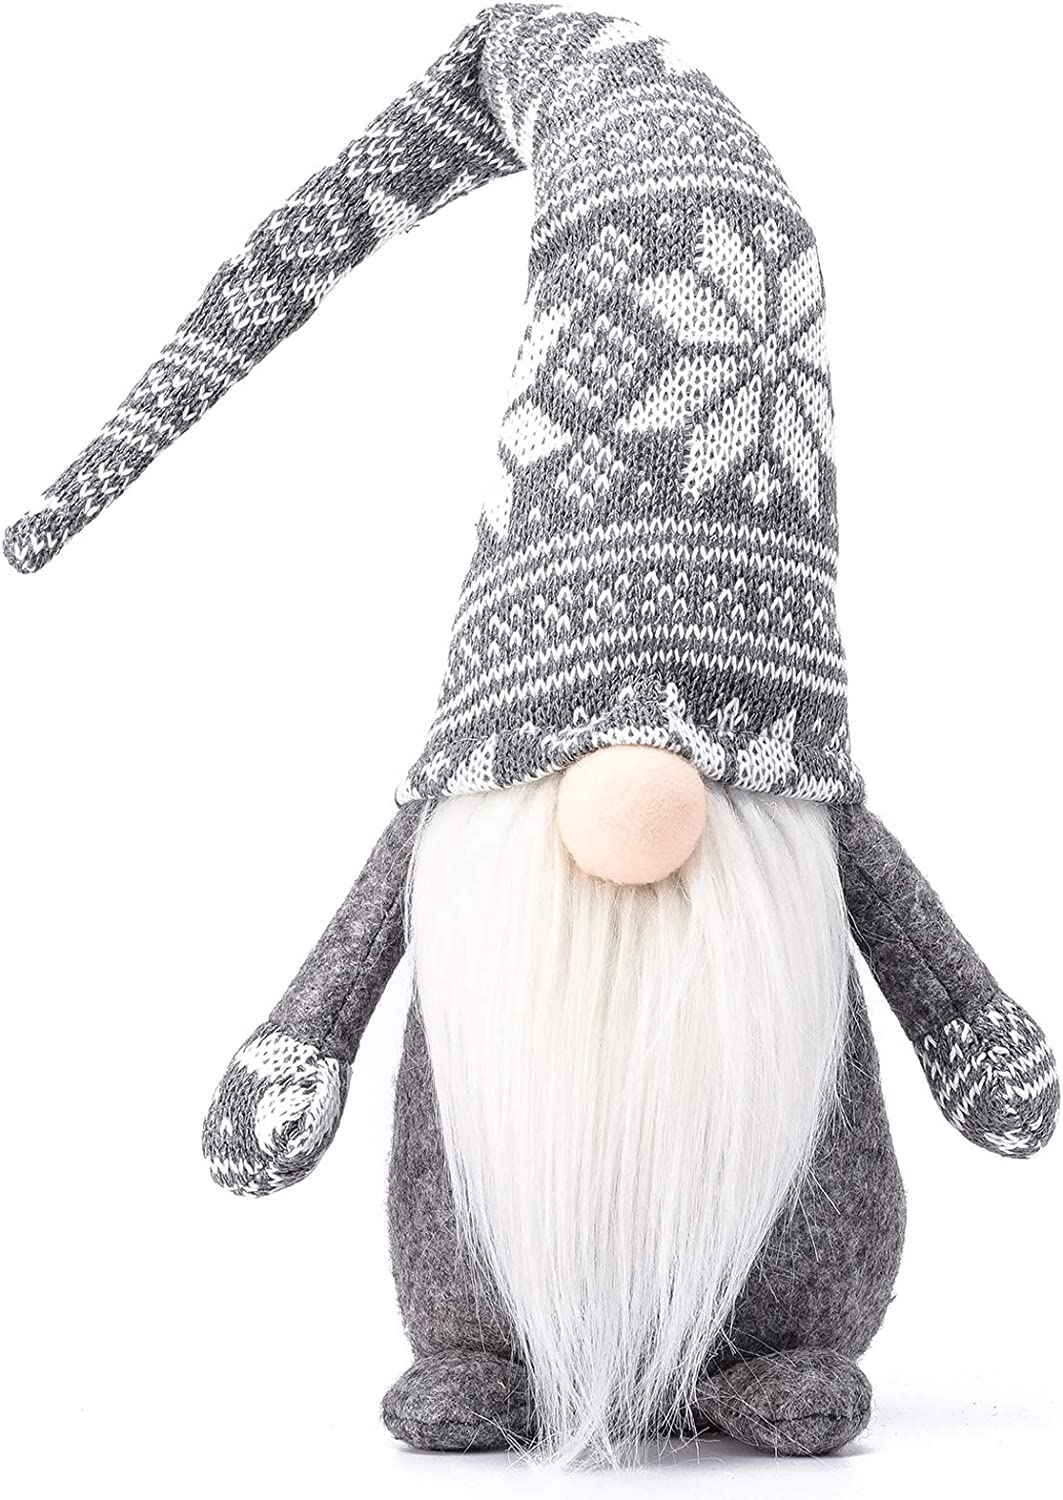 Funoasis Holiday Gnome Handmade Swedish Tomte, Christmas Elf Decoration Ornaments Thanks Giving Day Gifts Swedish Gnomes tomte (Grey Snowflake-19 Inches)